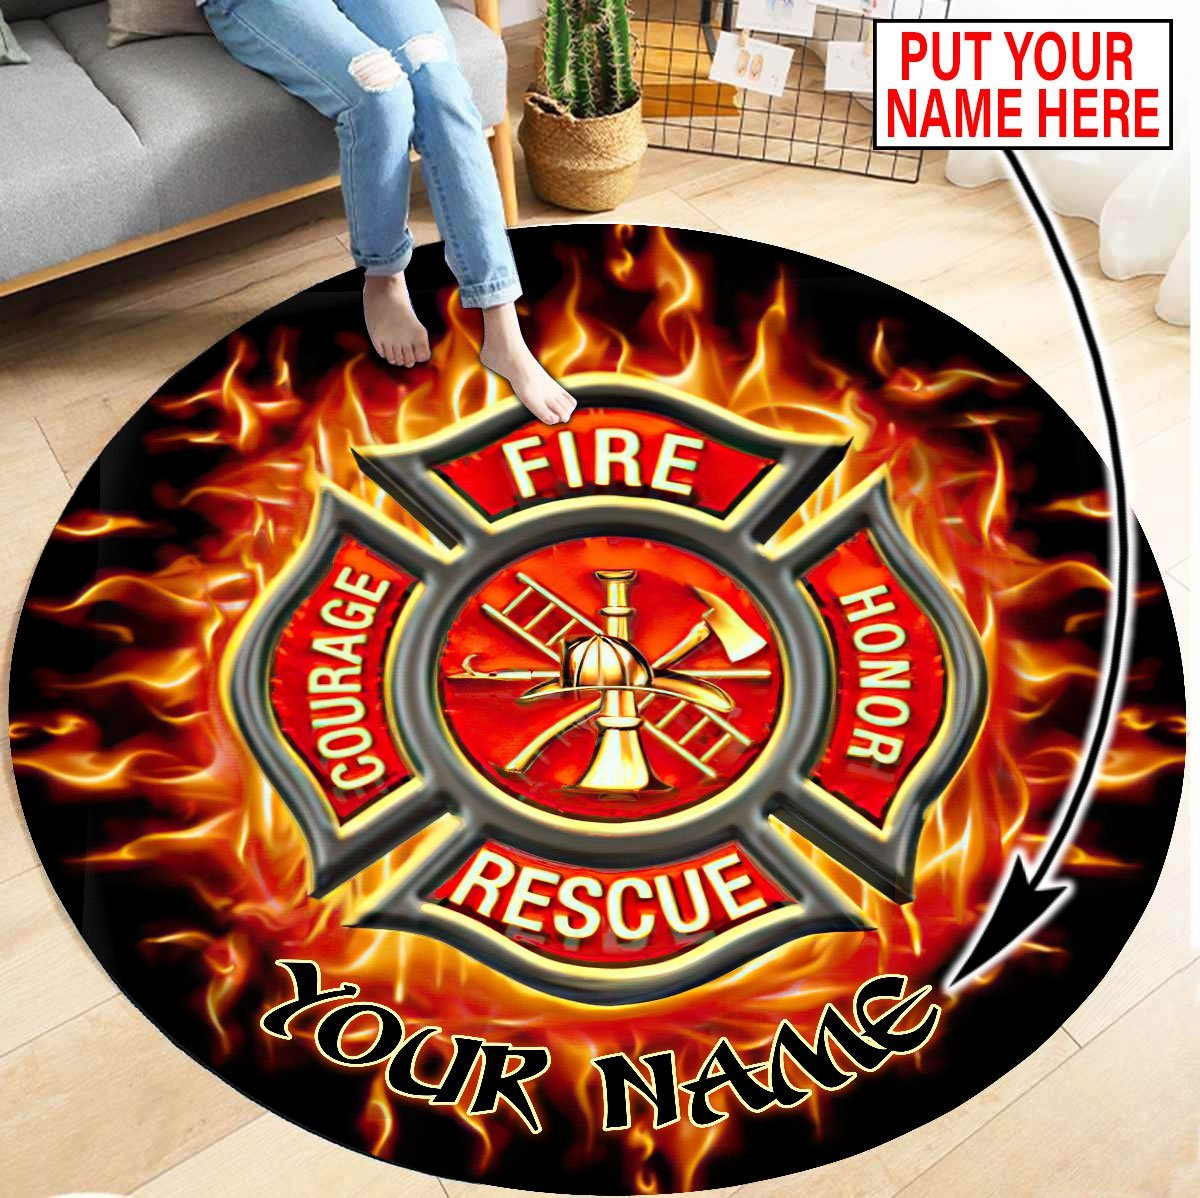 Firefighter Circle Round Rug Custom personalized name 8